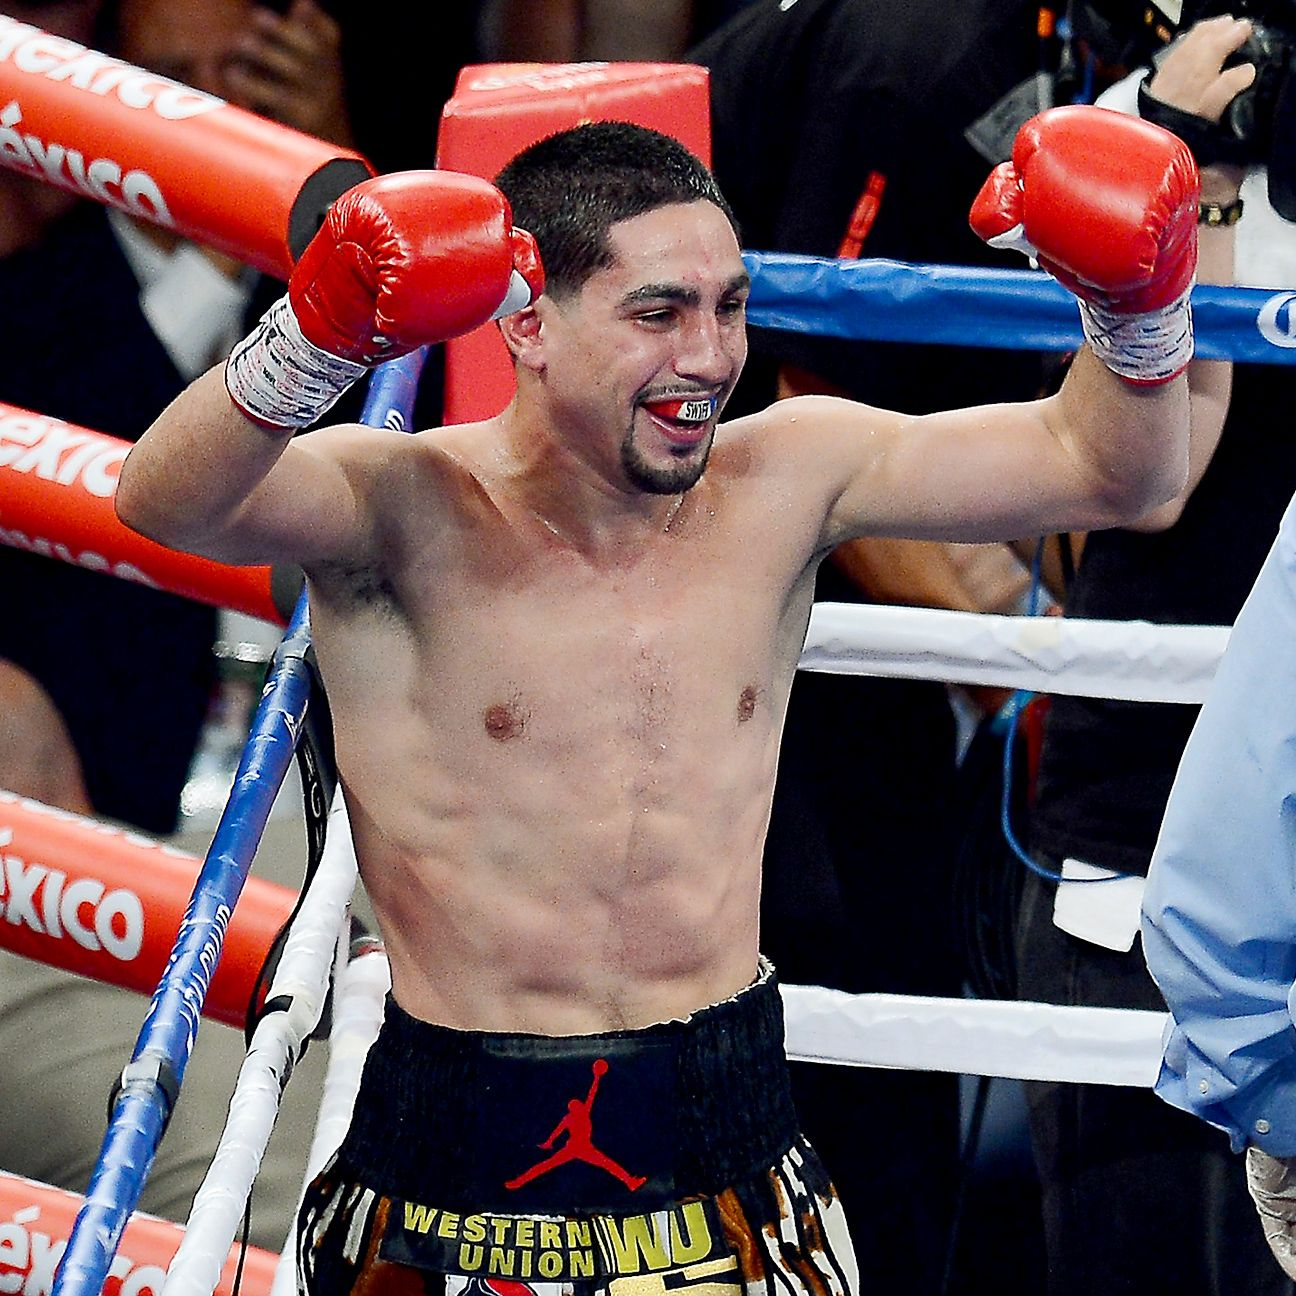 Danny Garcia To Fight Paulie Malignaggi On Aug. 1 In New York